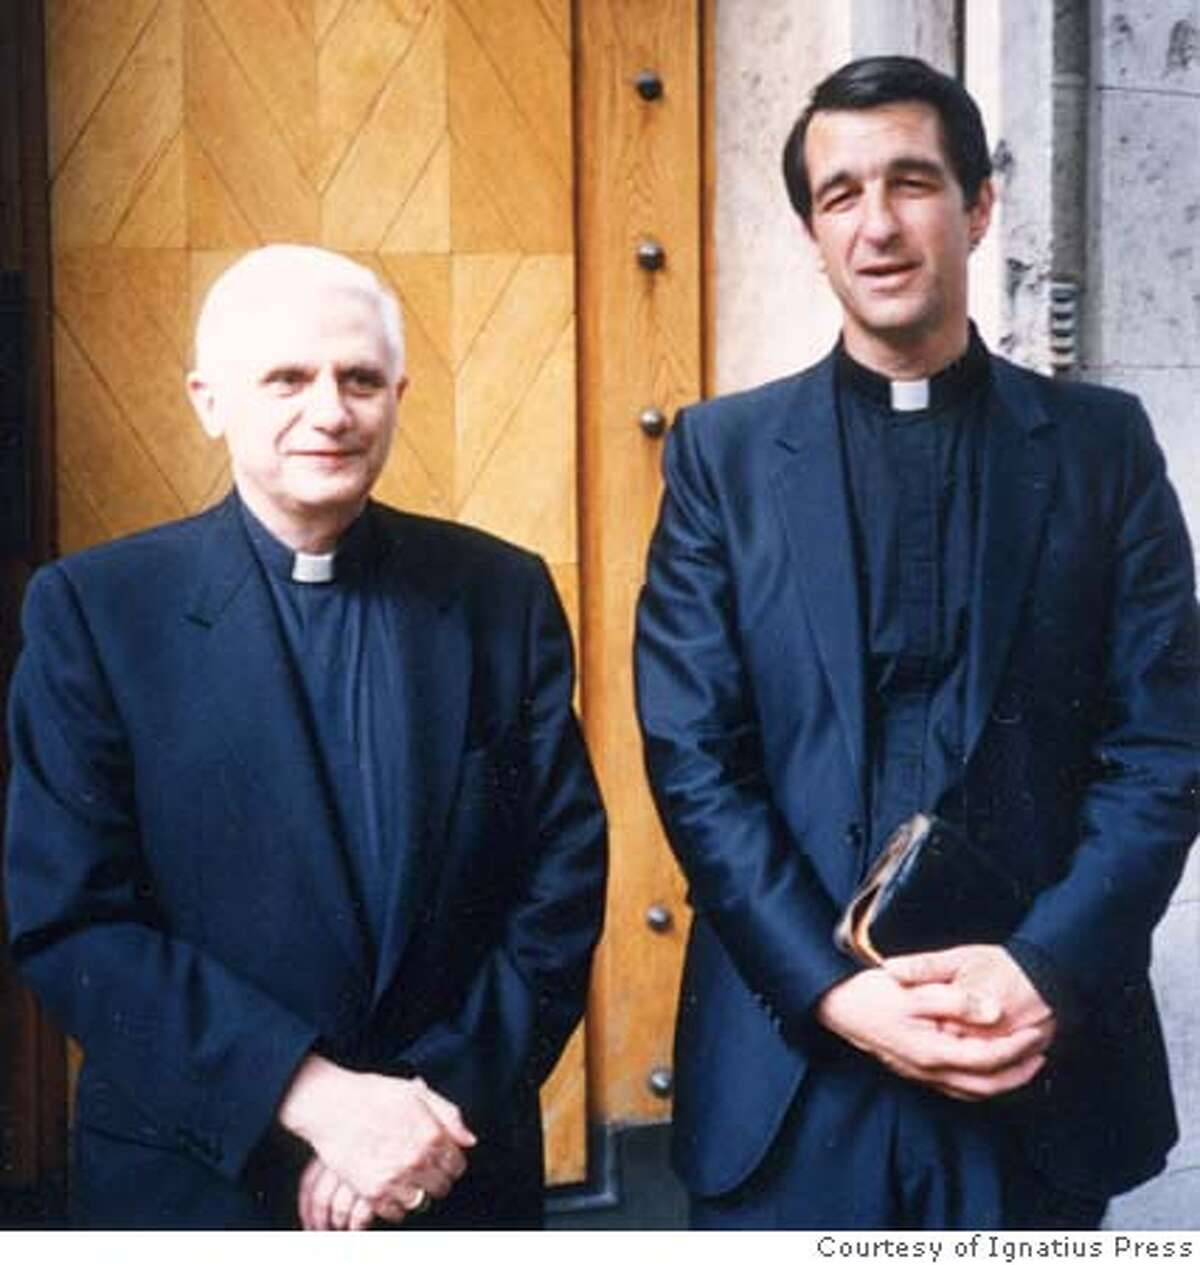 R-L: Photo of Father Joseph Fessio, S.J., (shown here with Ratzinger in 1999) Provost of Ave Maria University and Editor-in-Chief of Ignatius Press, is a longtime personal friend of Joseph Ratzinger, now Pope Benedict XVI. Photo: Courtesy of Ignatius Press